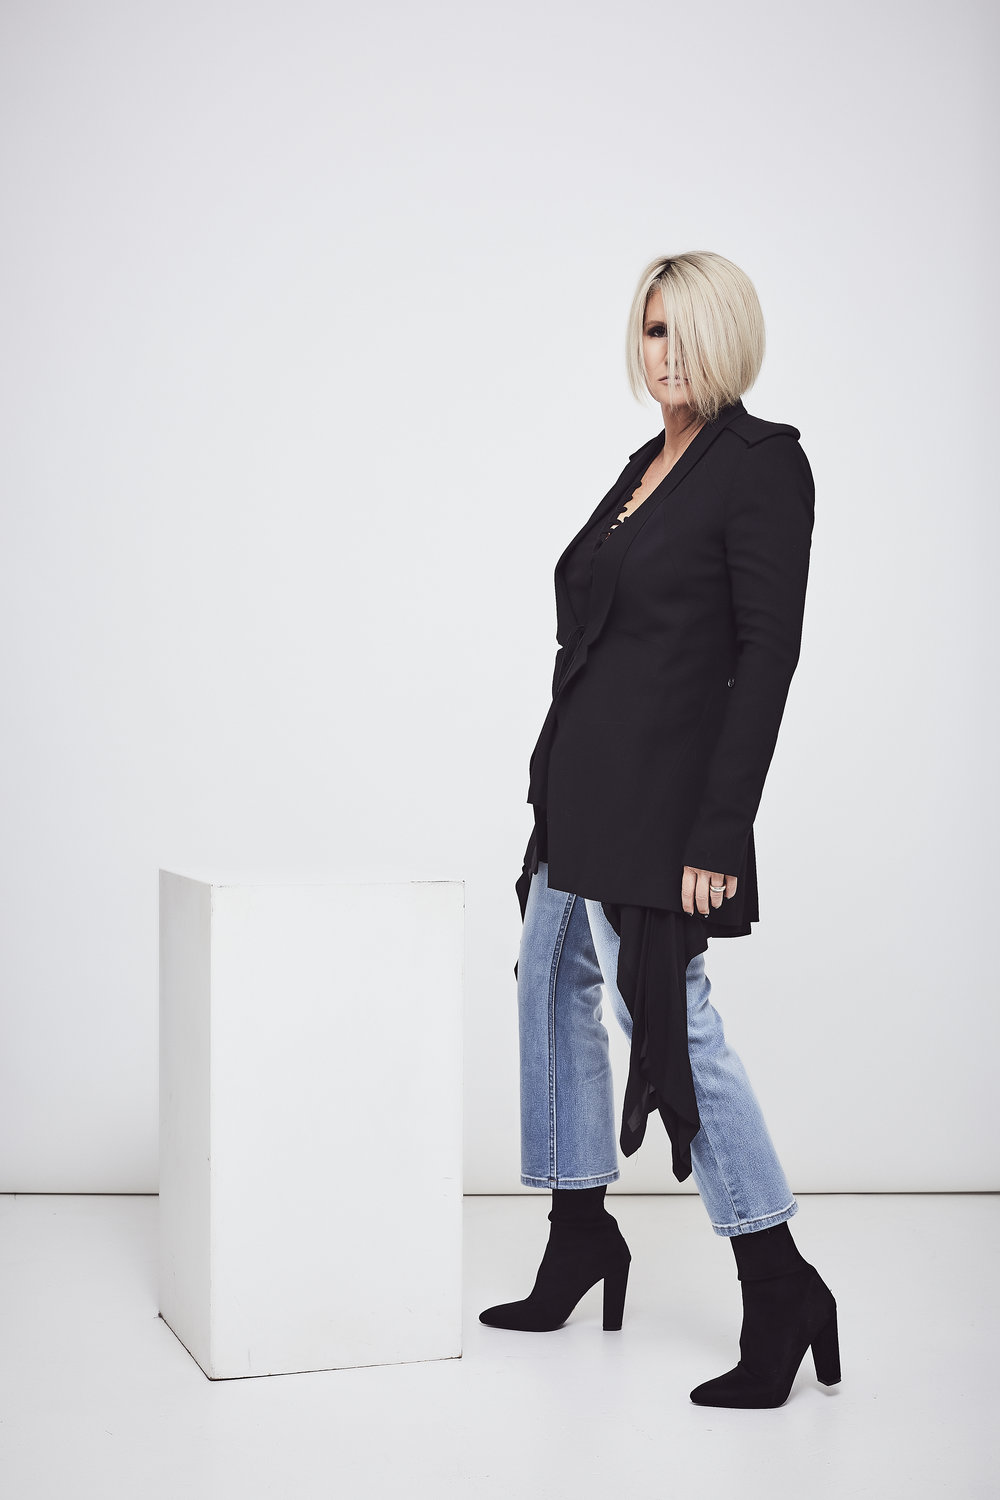 Kitx  jacket and shirt, Jeans from  Intrigue On Rose  and  Bollini  boots.